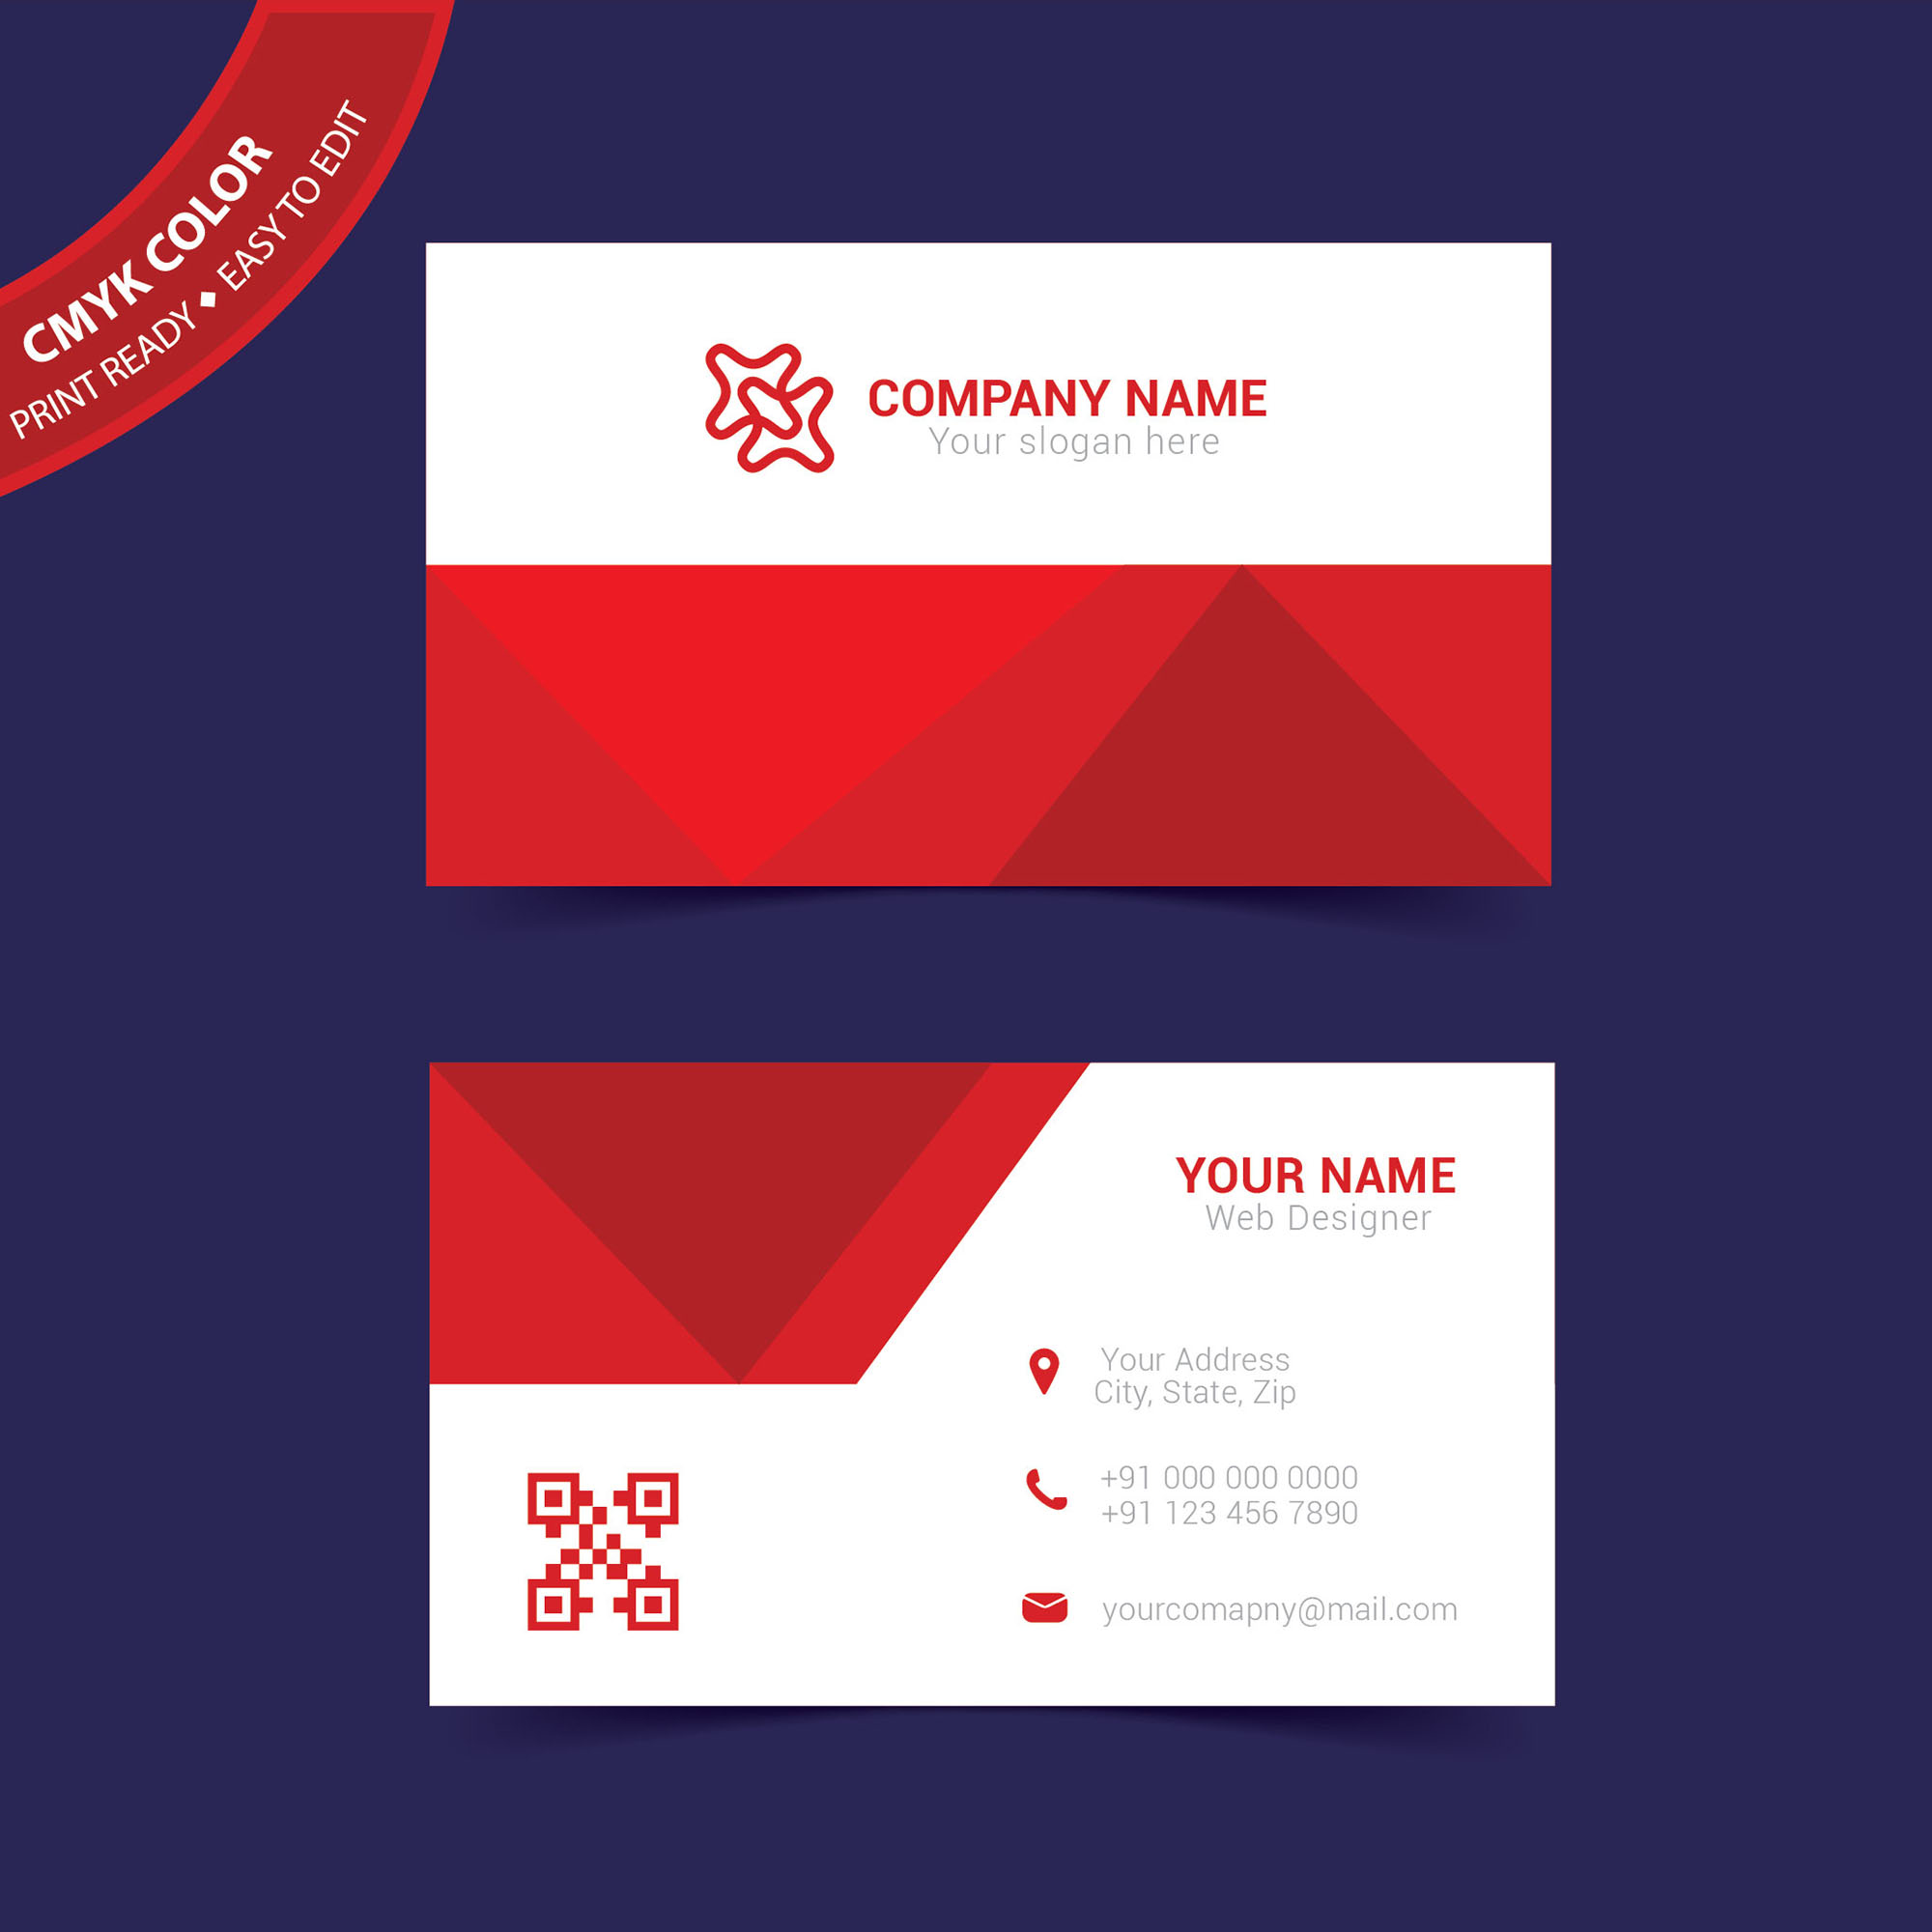 Business card print template free download wisxi business card business cards business card design business card template design templates cheaphphosting Images